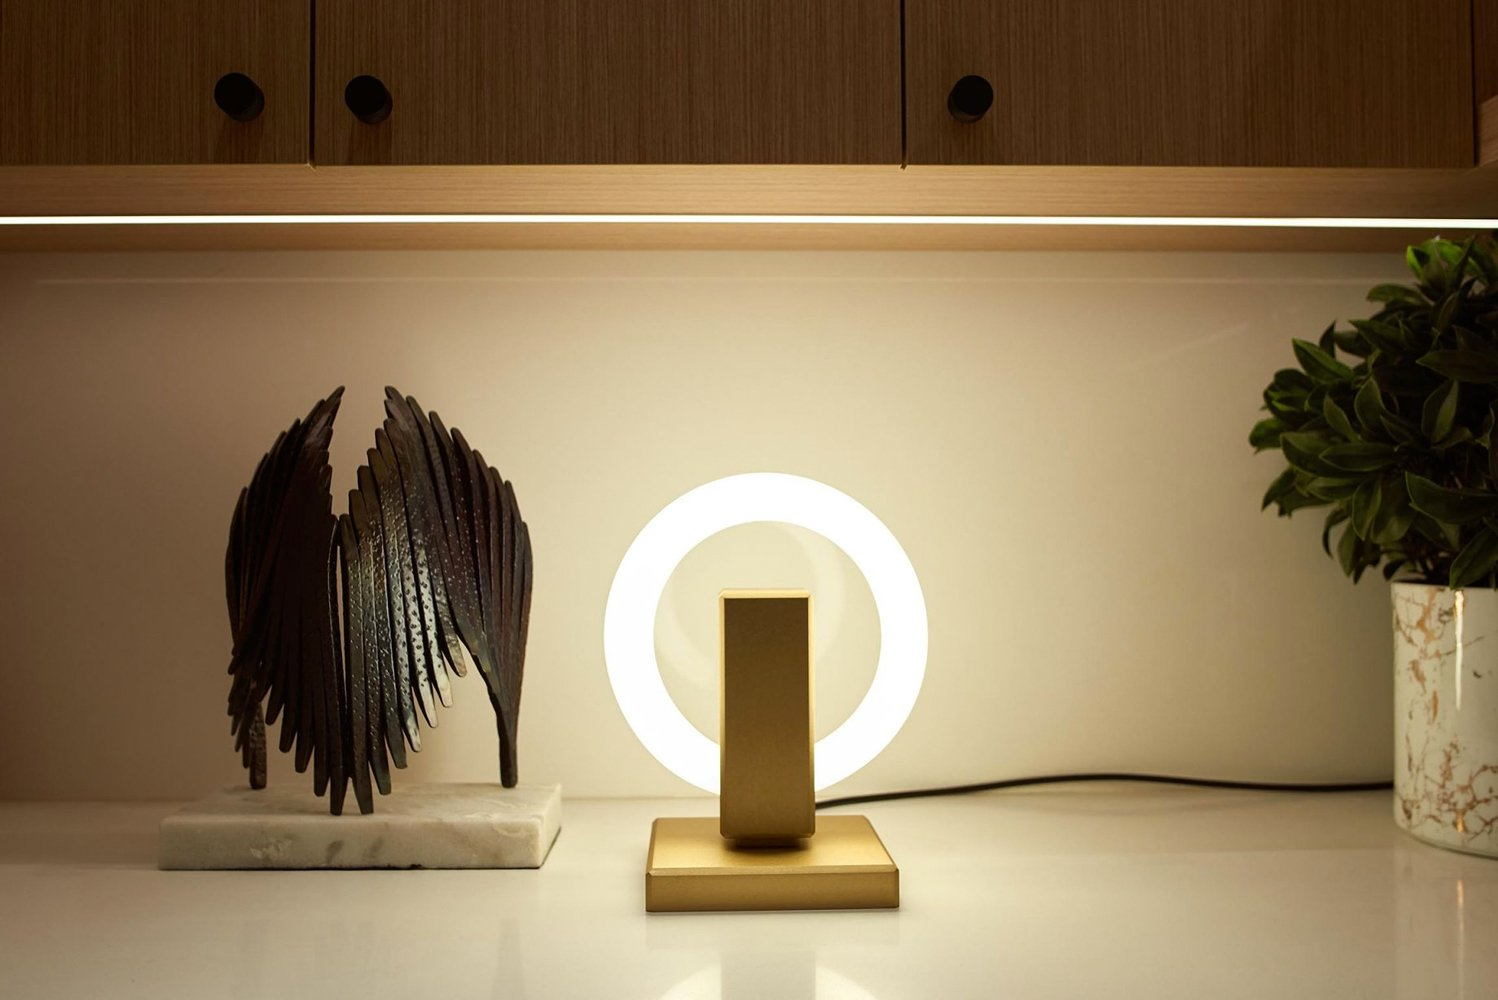 Introducing Olah, a table lamp from Karice Enterprises.